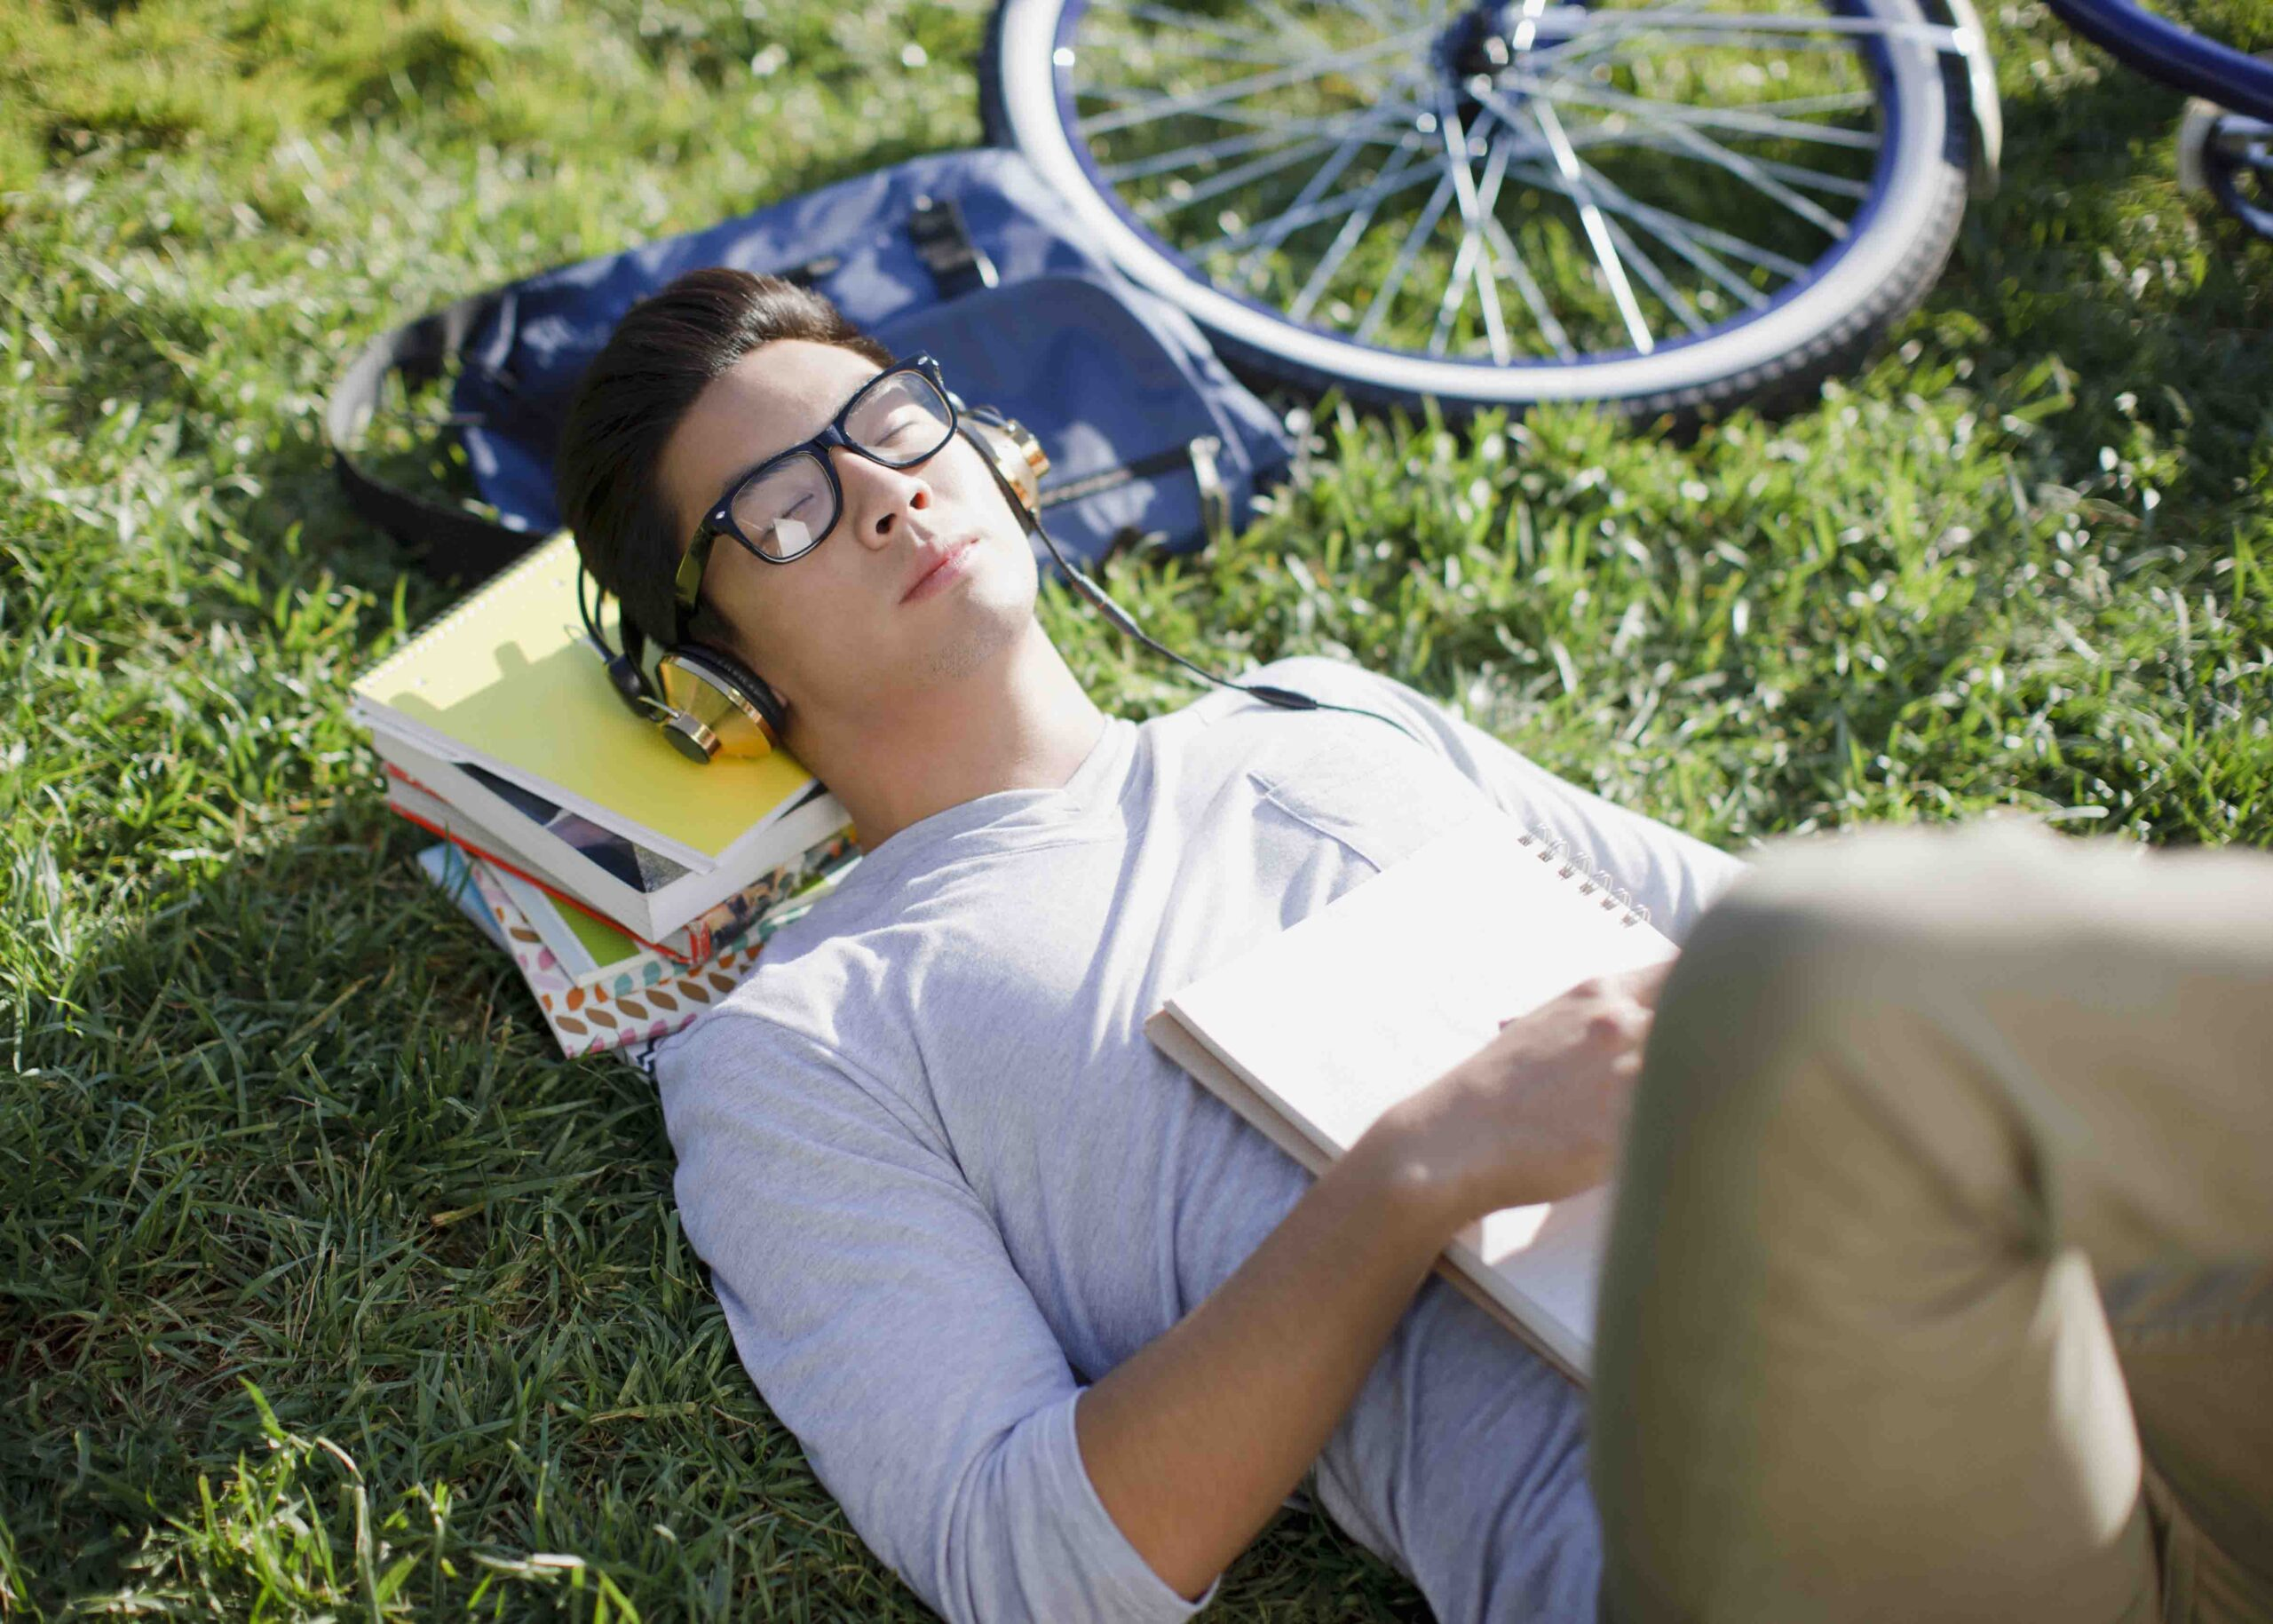 Student relaxing outdoors.